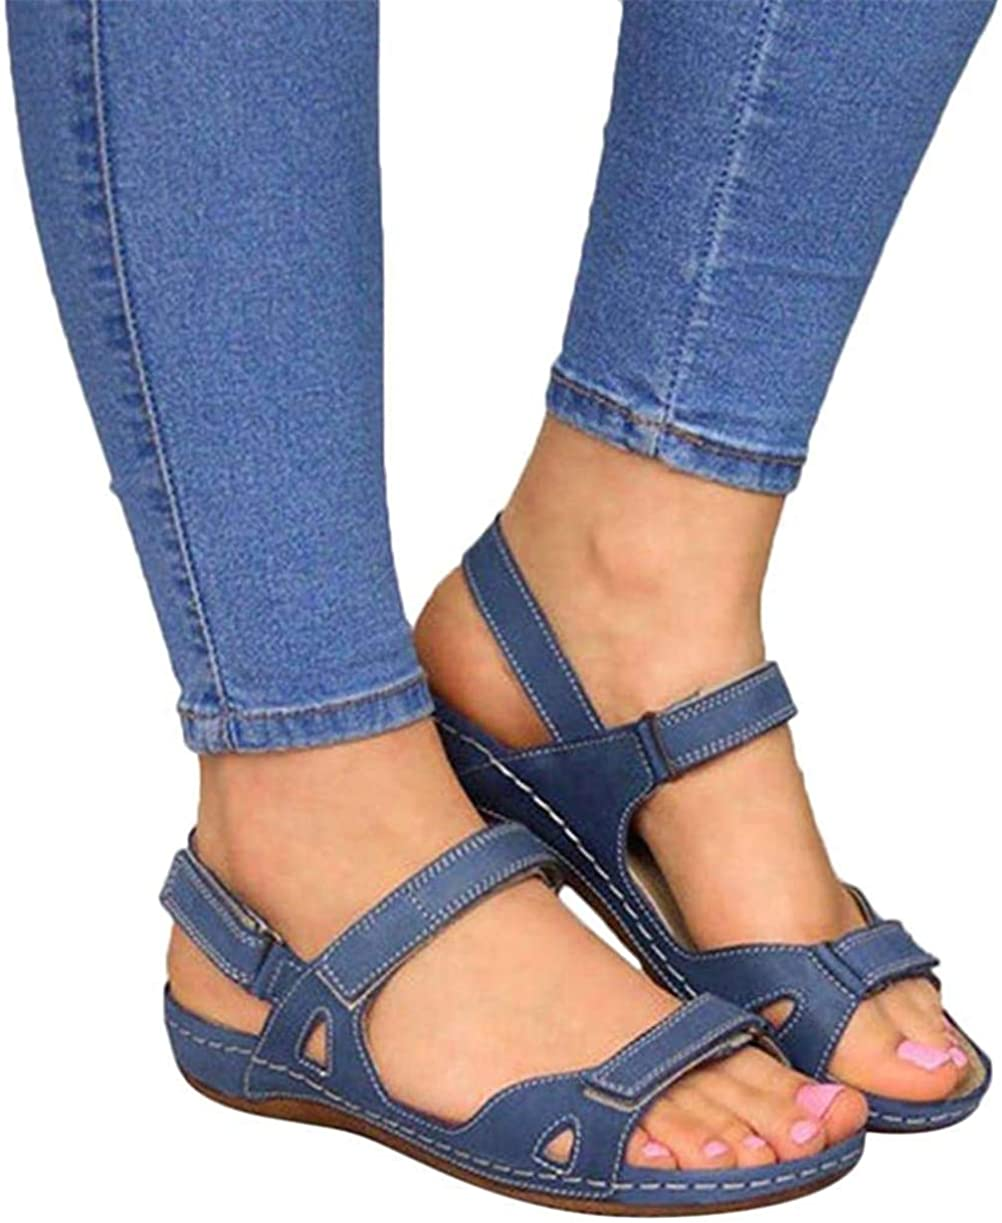 ALOVEWE Women's Orthopedic Open Toe Leather Sandals, Premium Comfy Hook and Loop Closure Sport Sandal, Casual Flat Arch Support Wedge Shoes for Summer Outdoor Hiking Walking Beach